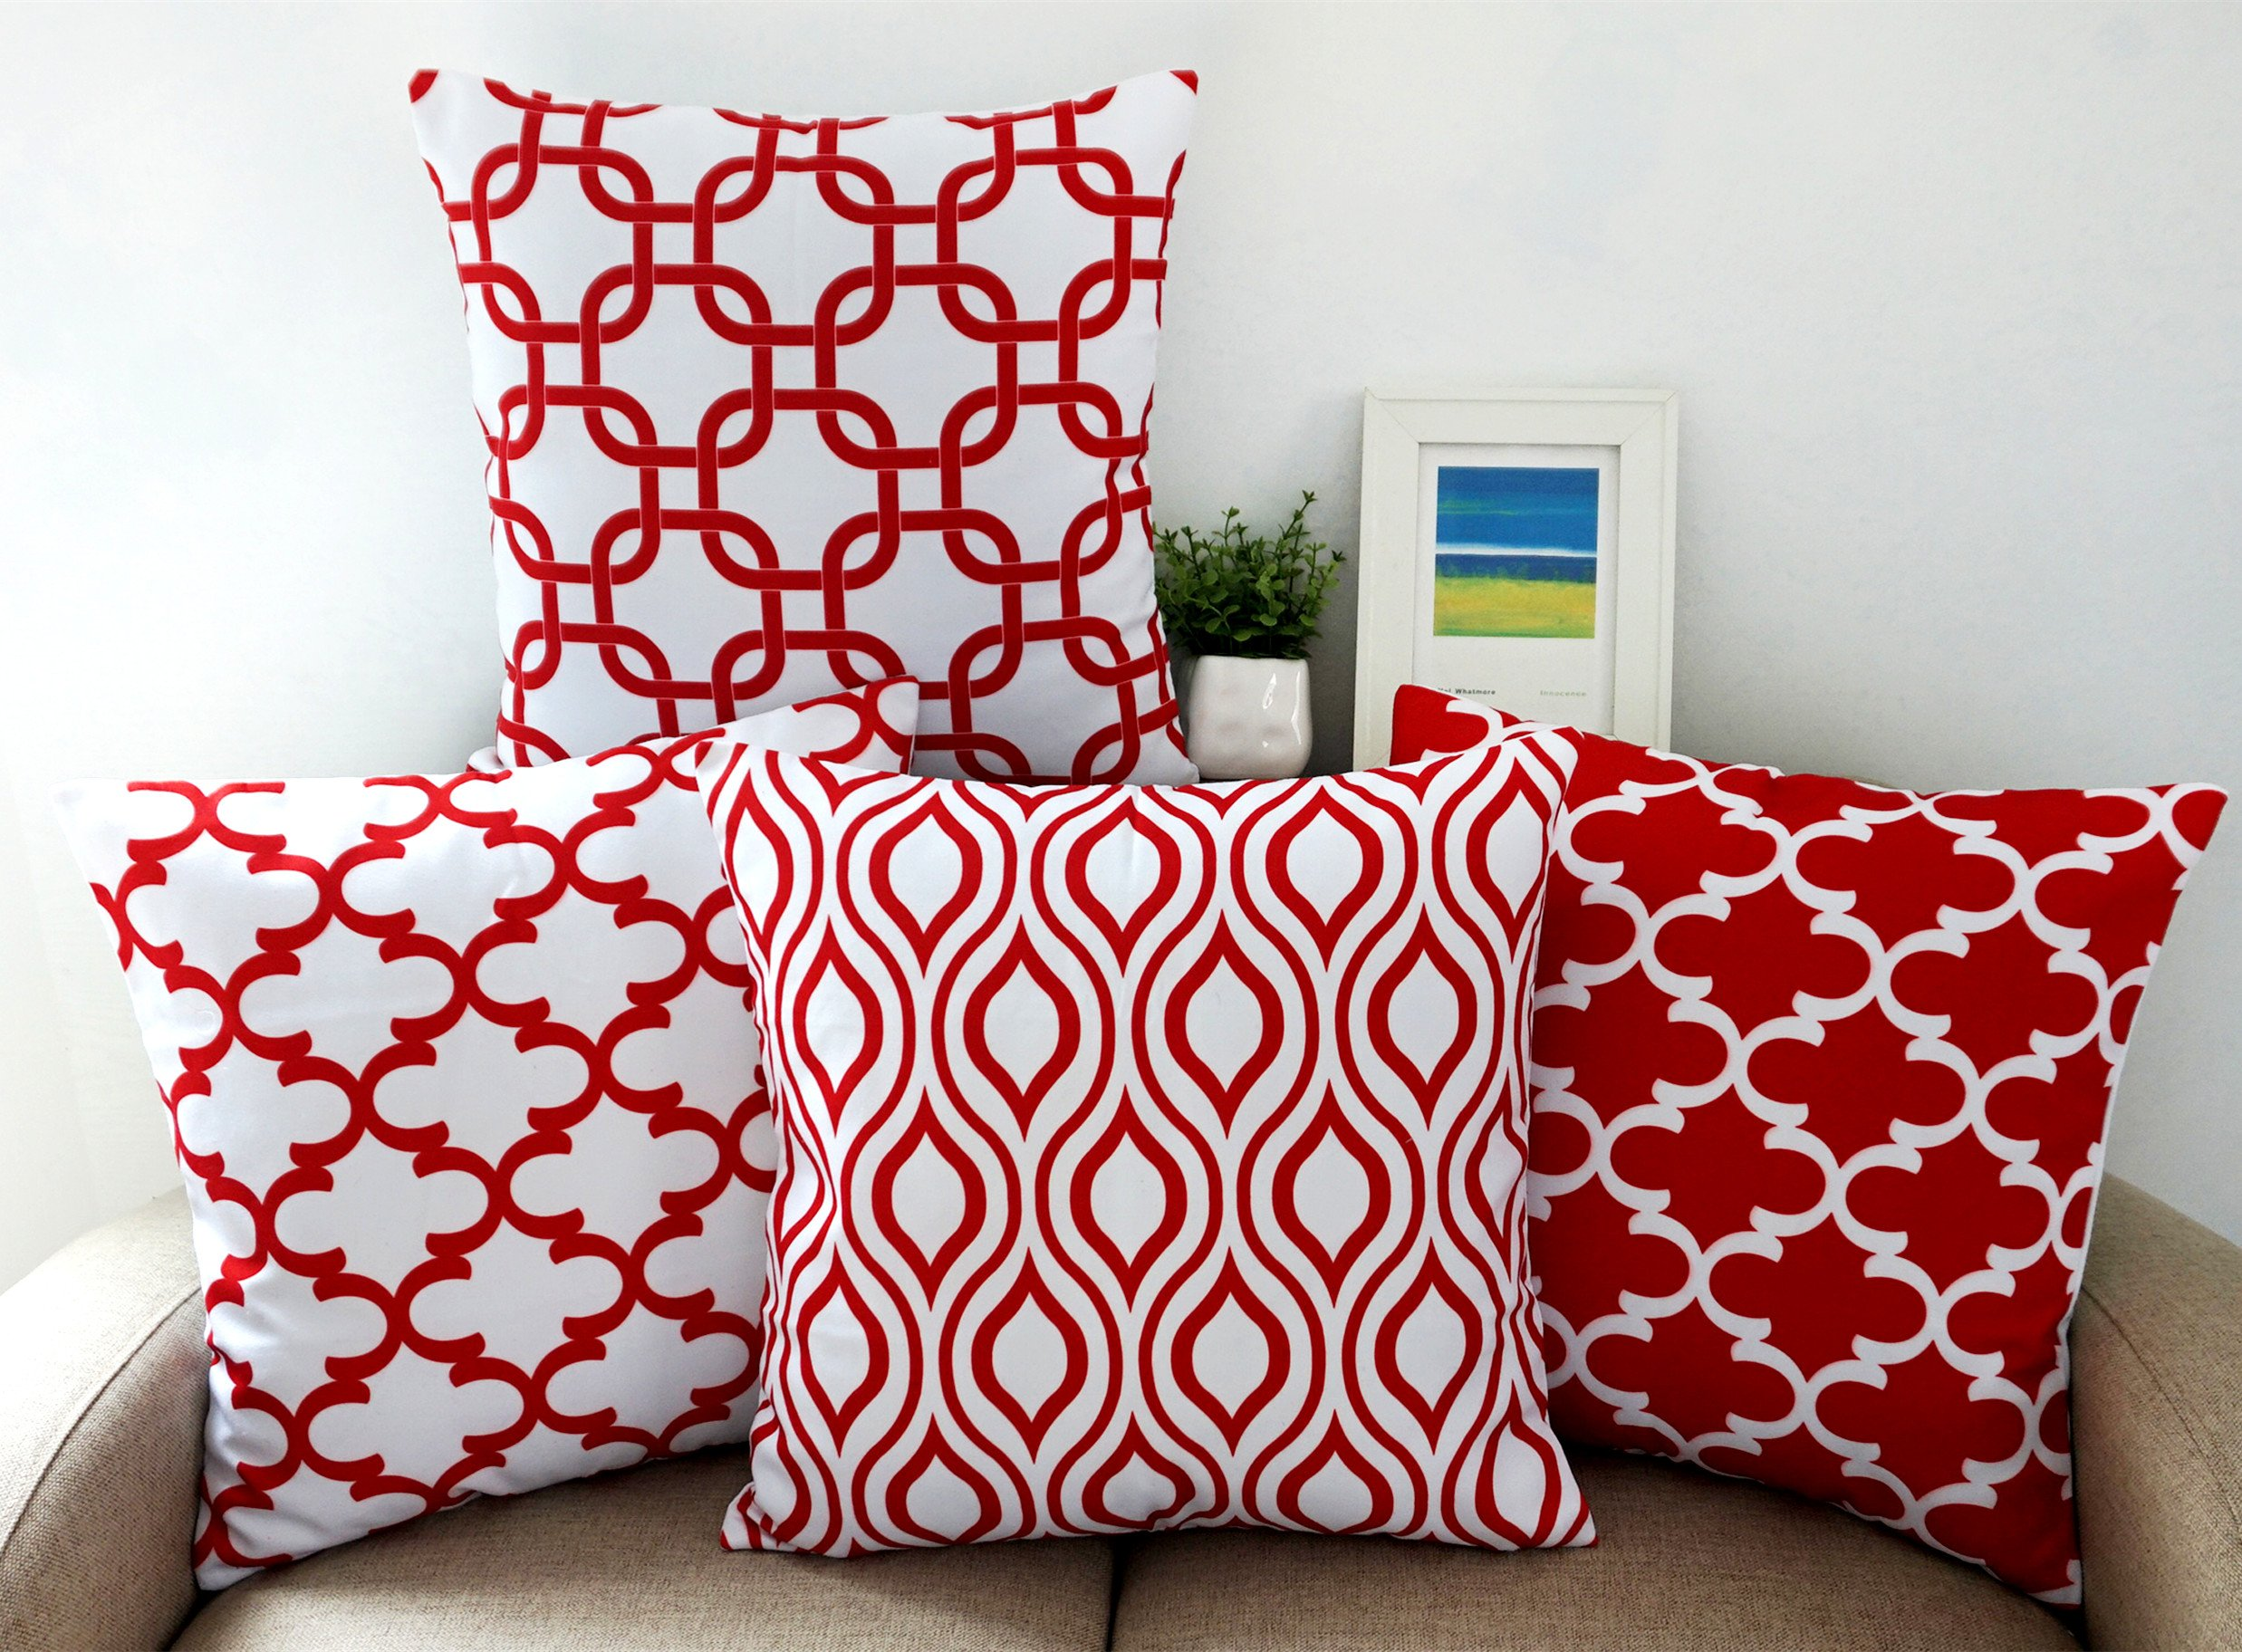 Howarmer Canvas Cotton Square Throw Pillows of Red Arrow Pattern, Quatrefoil, Red Trellis and Red Chevron Accent, 18 by 18 Inch, 4-Pack by Howarmer